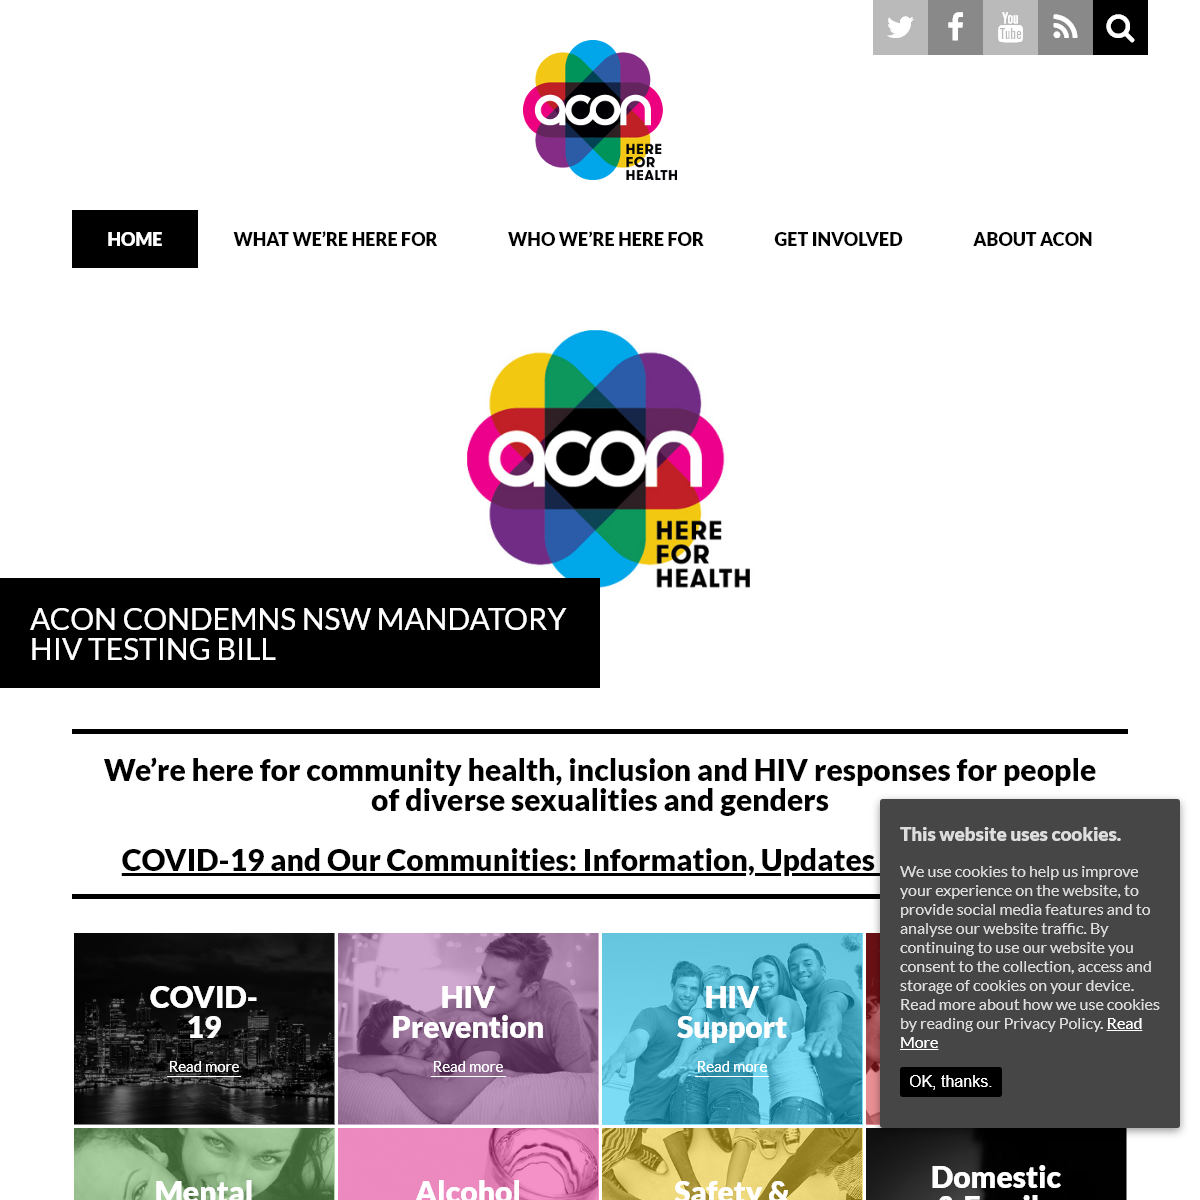 ACON - We are a New South Wales based health promotion organisation specialising in HIV prevention, HIV support and lesbian, gay